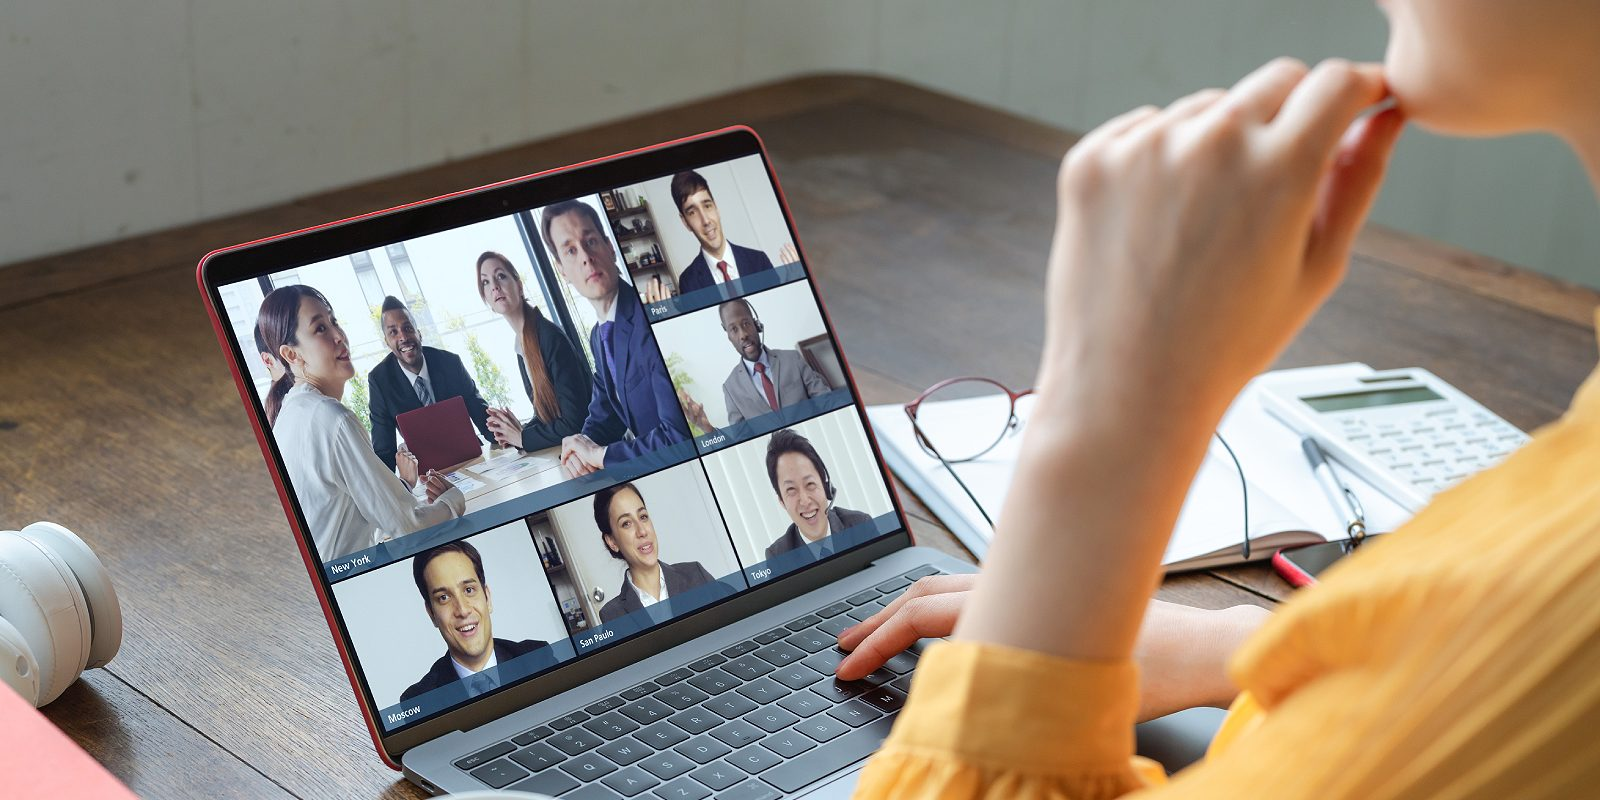 An employee attending team meeting. There are cybersecurity risks associated with teleworking